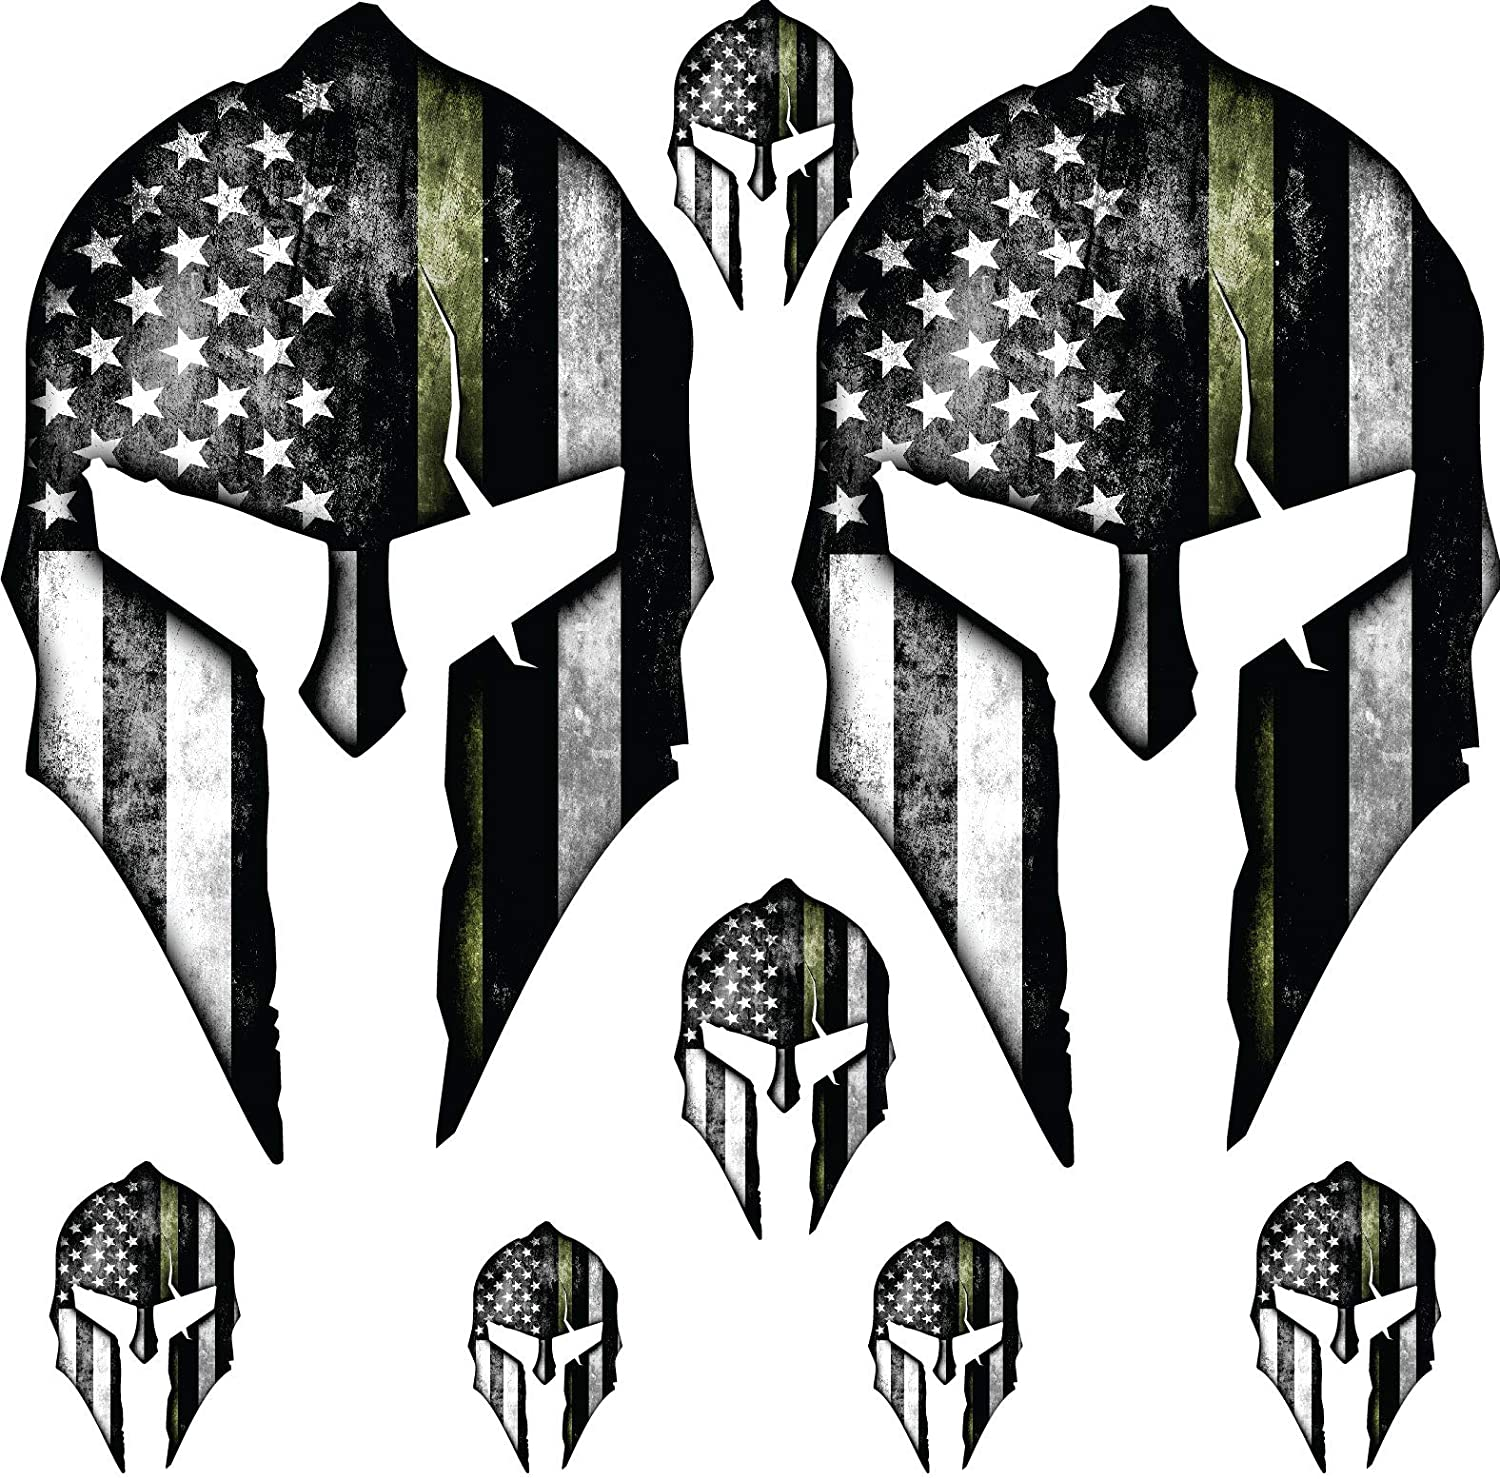 Spartan Helmet - Moan ABBE - Grunge Tactical Decal Set - 6mil - Laminated - UV Protected - (XLarge, Military)